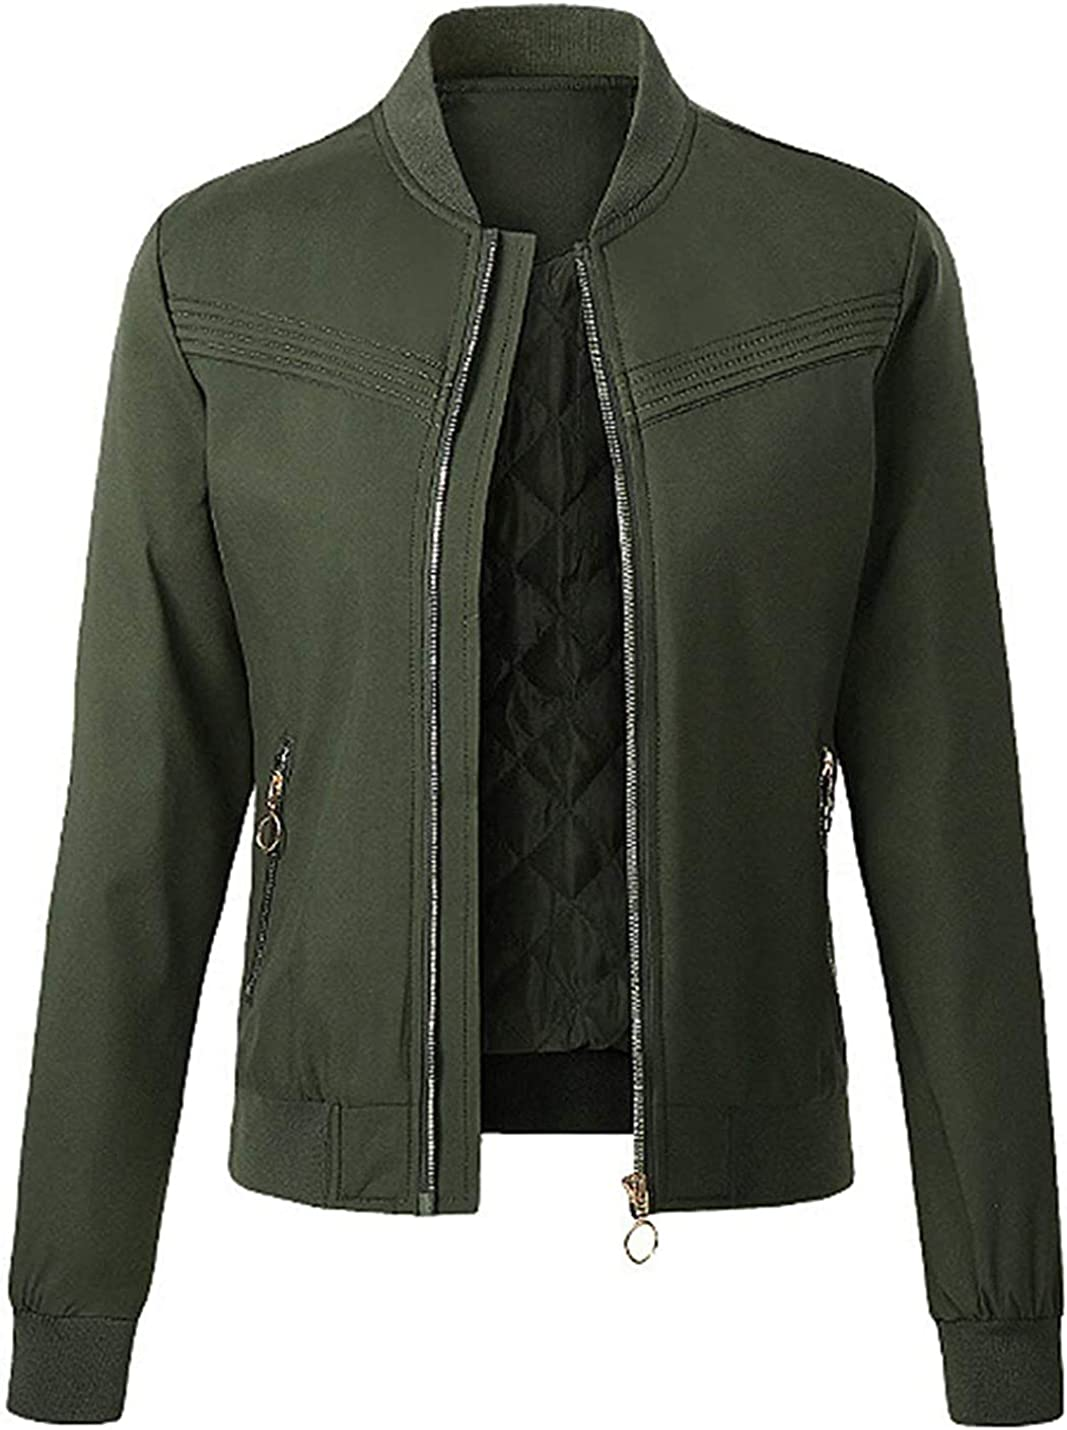 PAODIKUAI Women's Casual Long Sleeves up Zip Jack Clearance SALE Albuquerque Mall Limited time Bomber Quilted